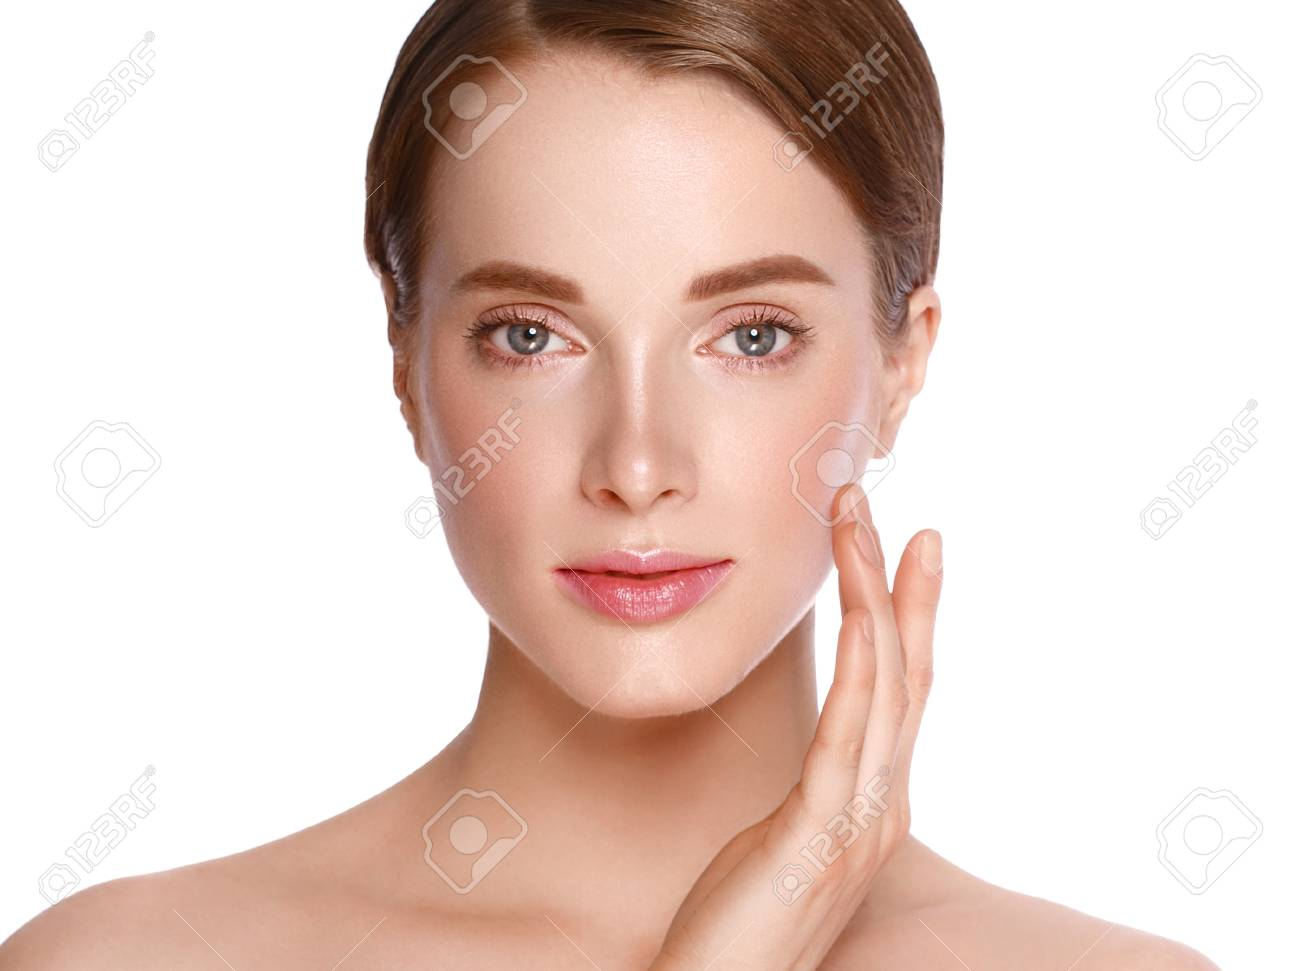 Beauty Woman face with hand Portrait. Beautiful model Girl with Perfect Fresh Clean Skin color lips purple red. Blonde brunette short hair Youth and Skin Care Concept. Isolated on a white background - 79665210